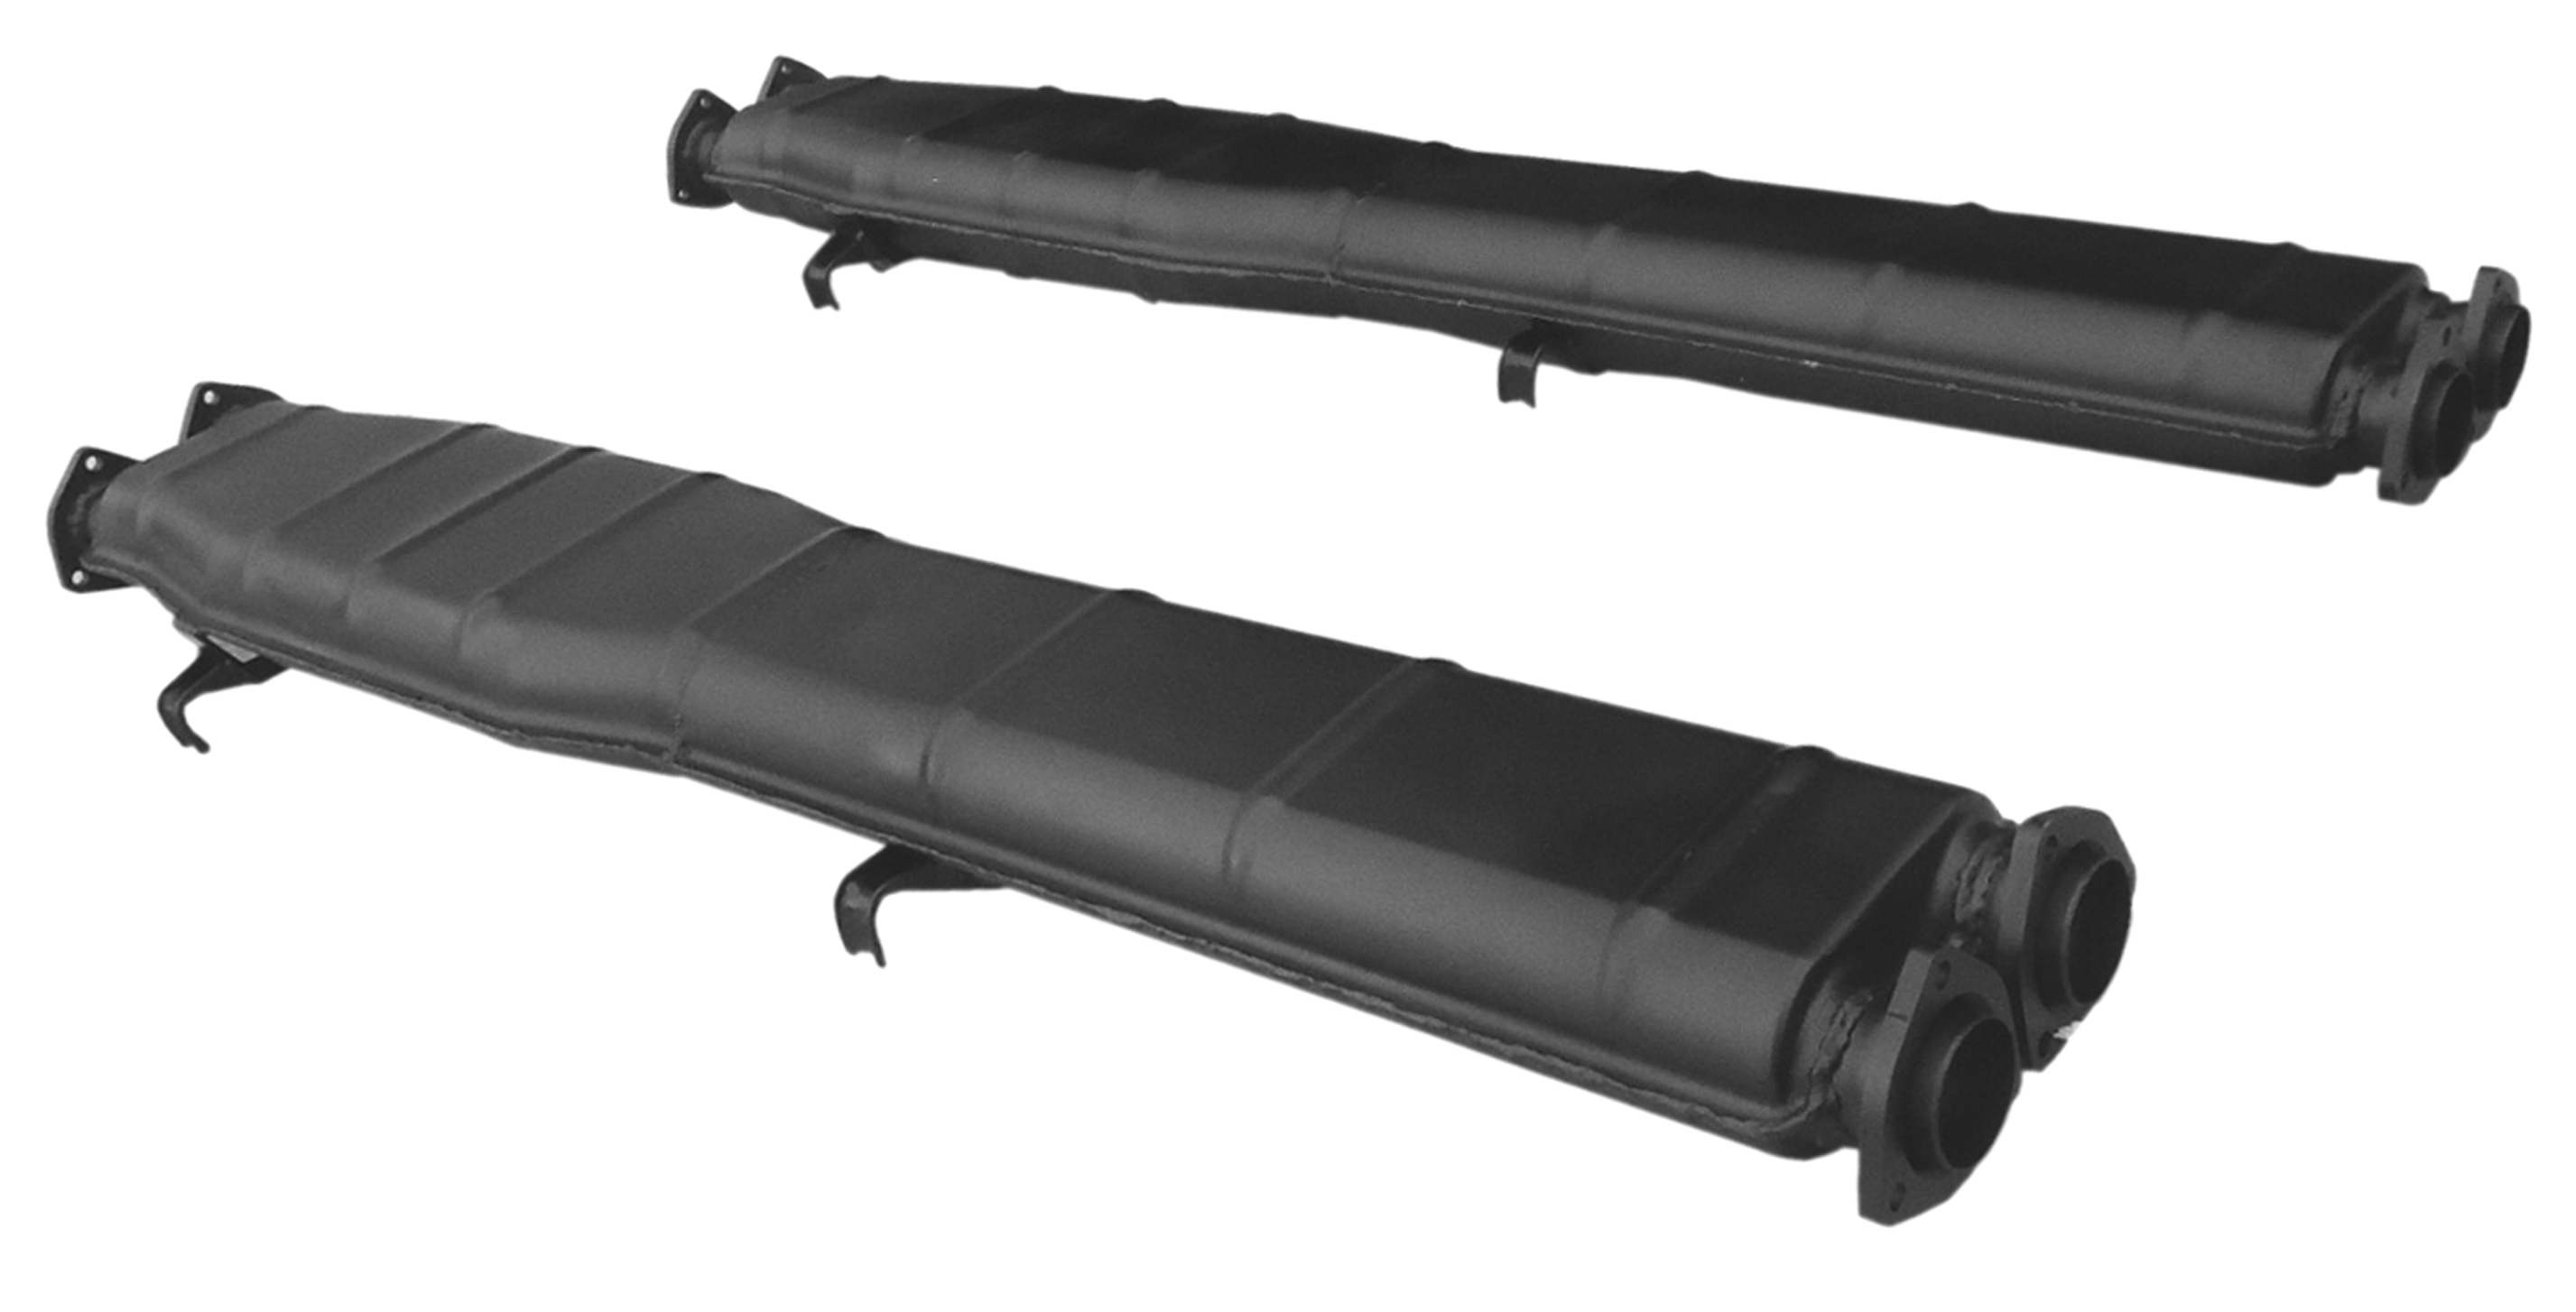 CENTRE AND REAR SILENCERS